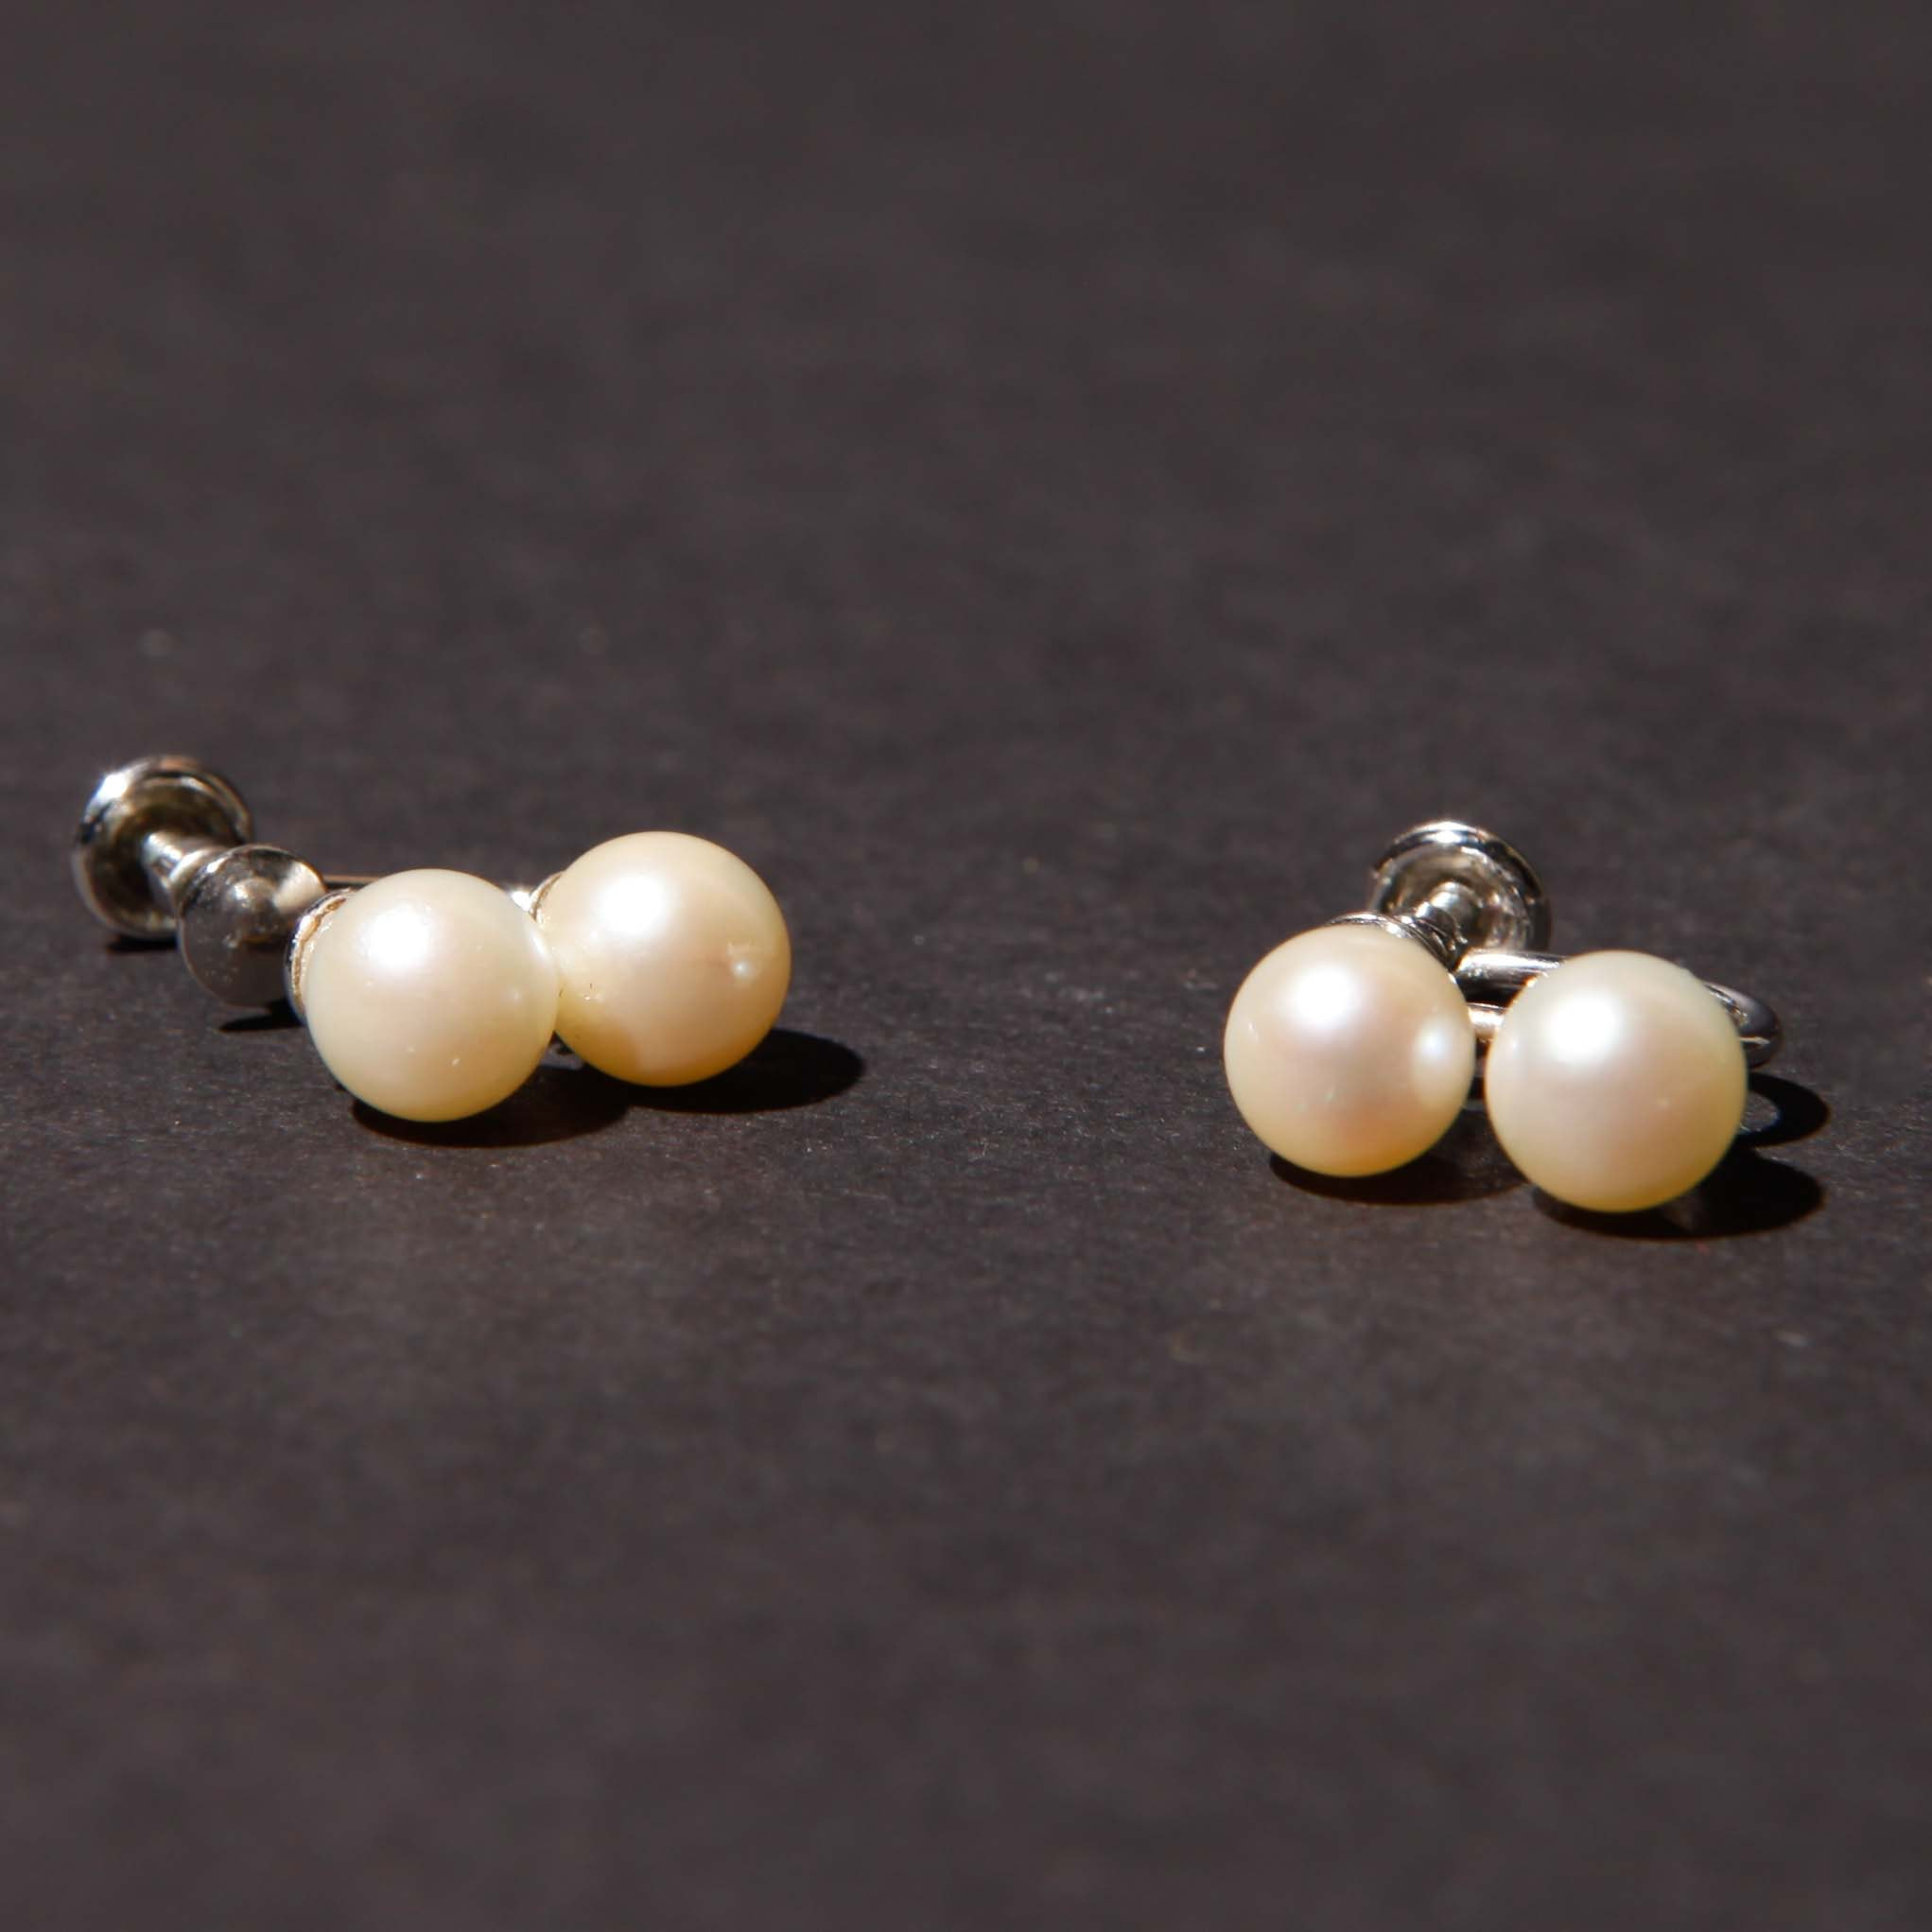 12K Gold Filled Cultured Pearl Earrings